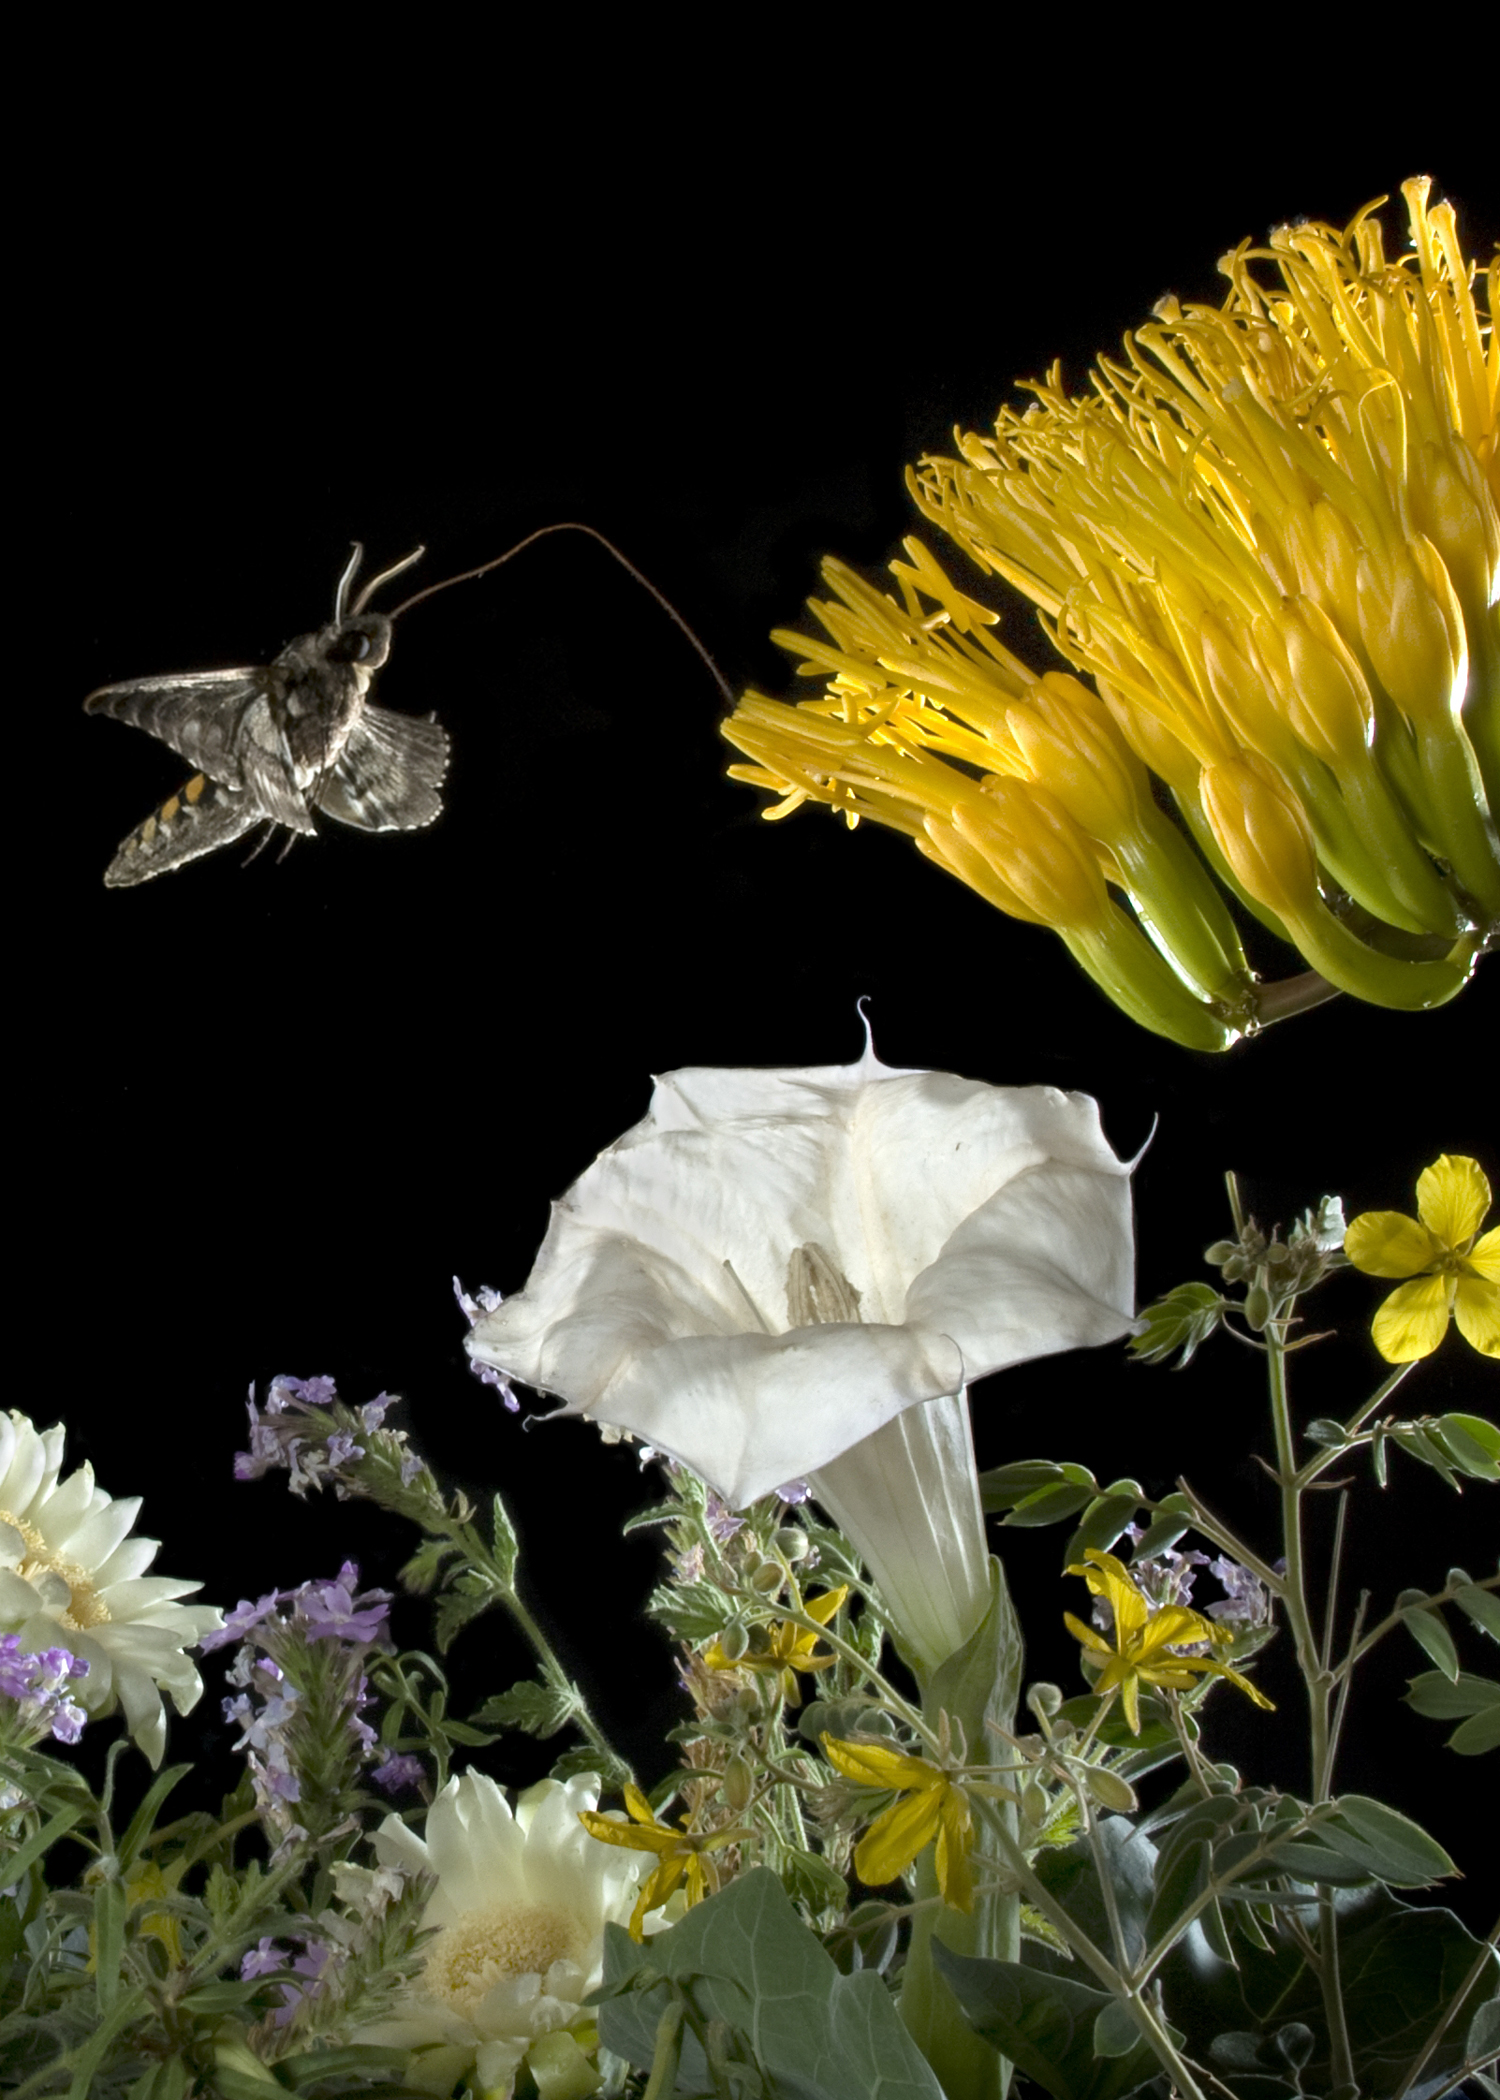 Moth hovers near bright yellow flower seeking nectar